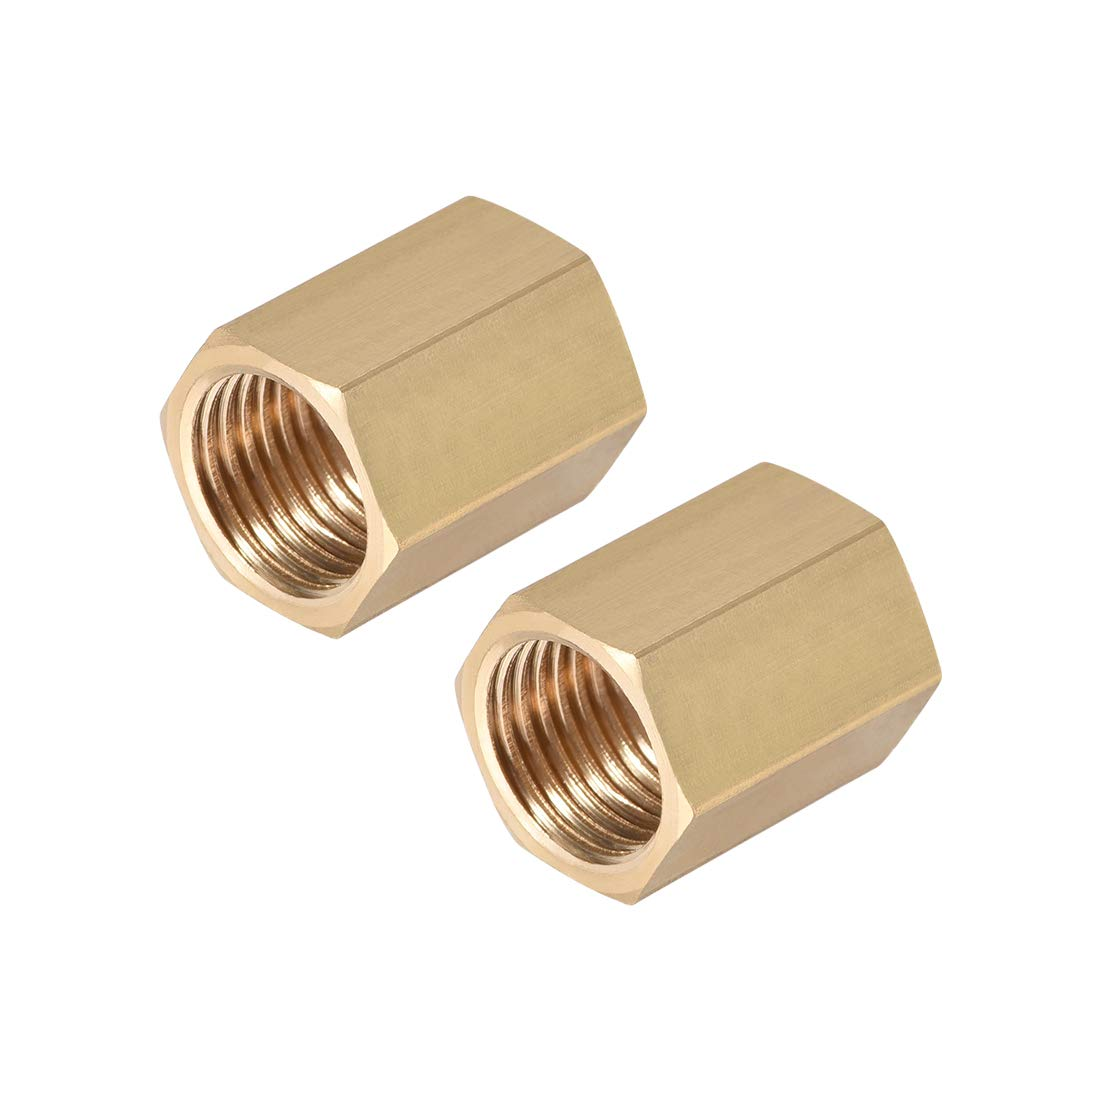 uxcell Brass Pipe Fitting Connector Straight Hex Nipple Coupler 1/4 X 1/4 G Female Thread Gold Tone 2pcs